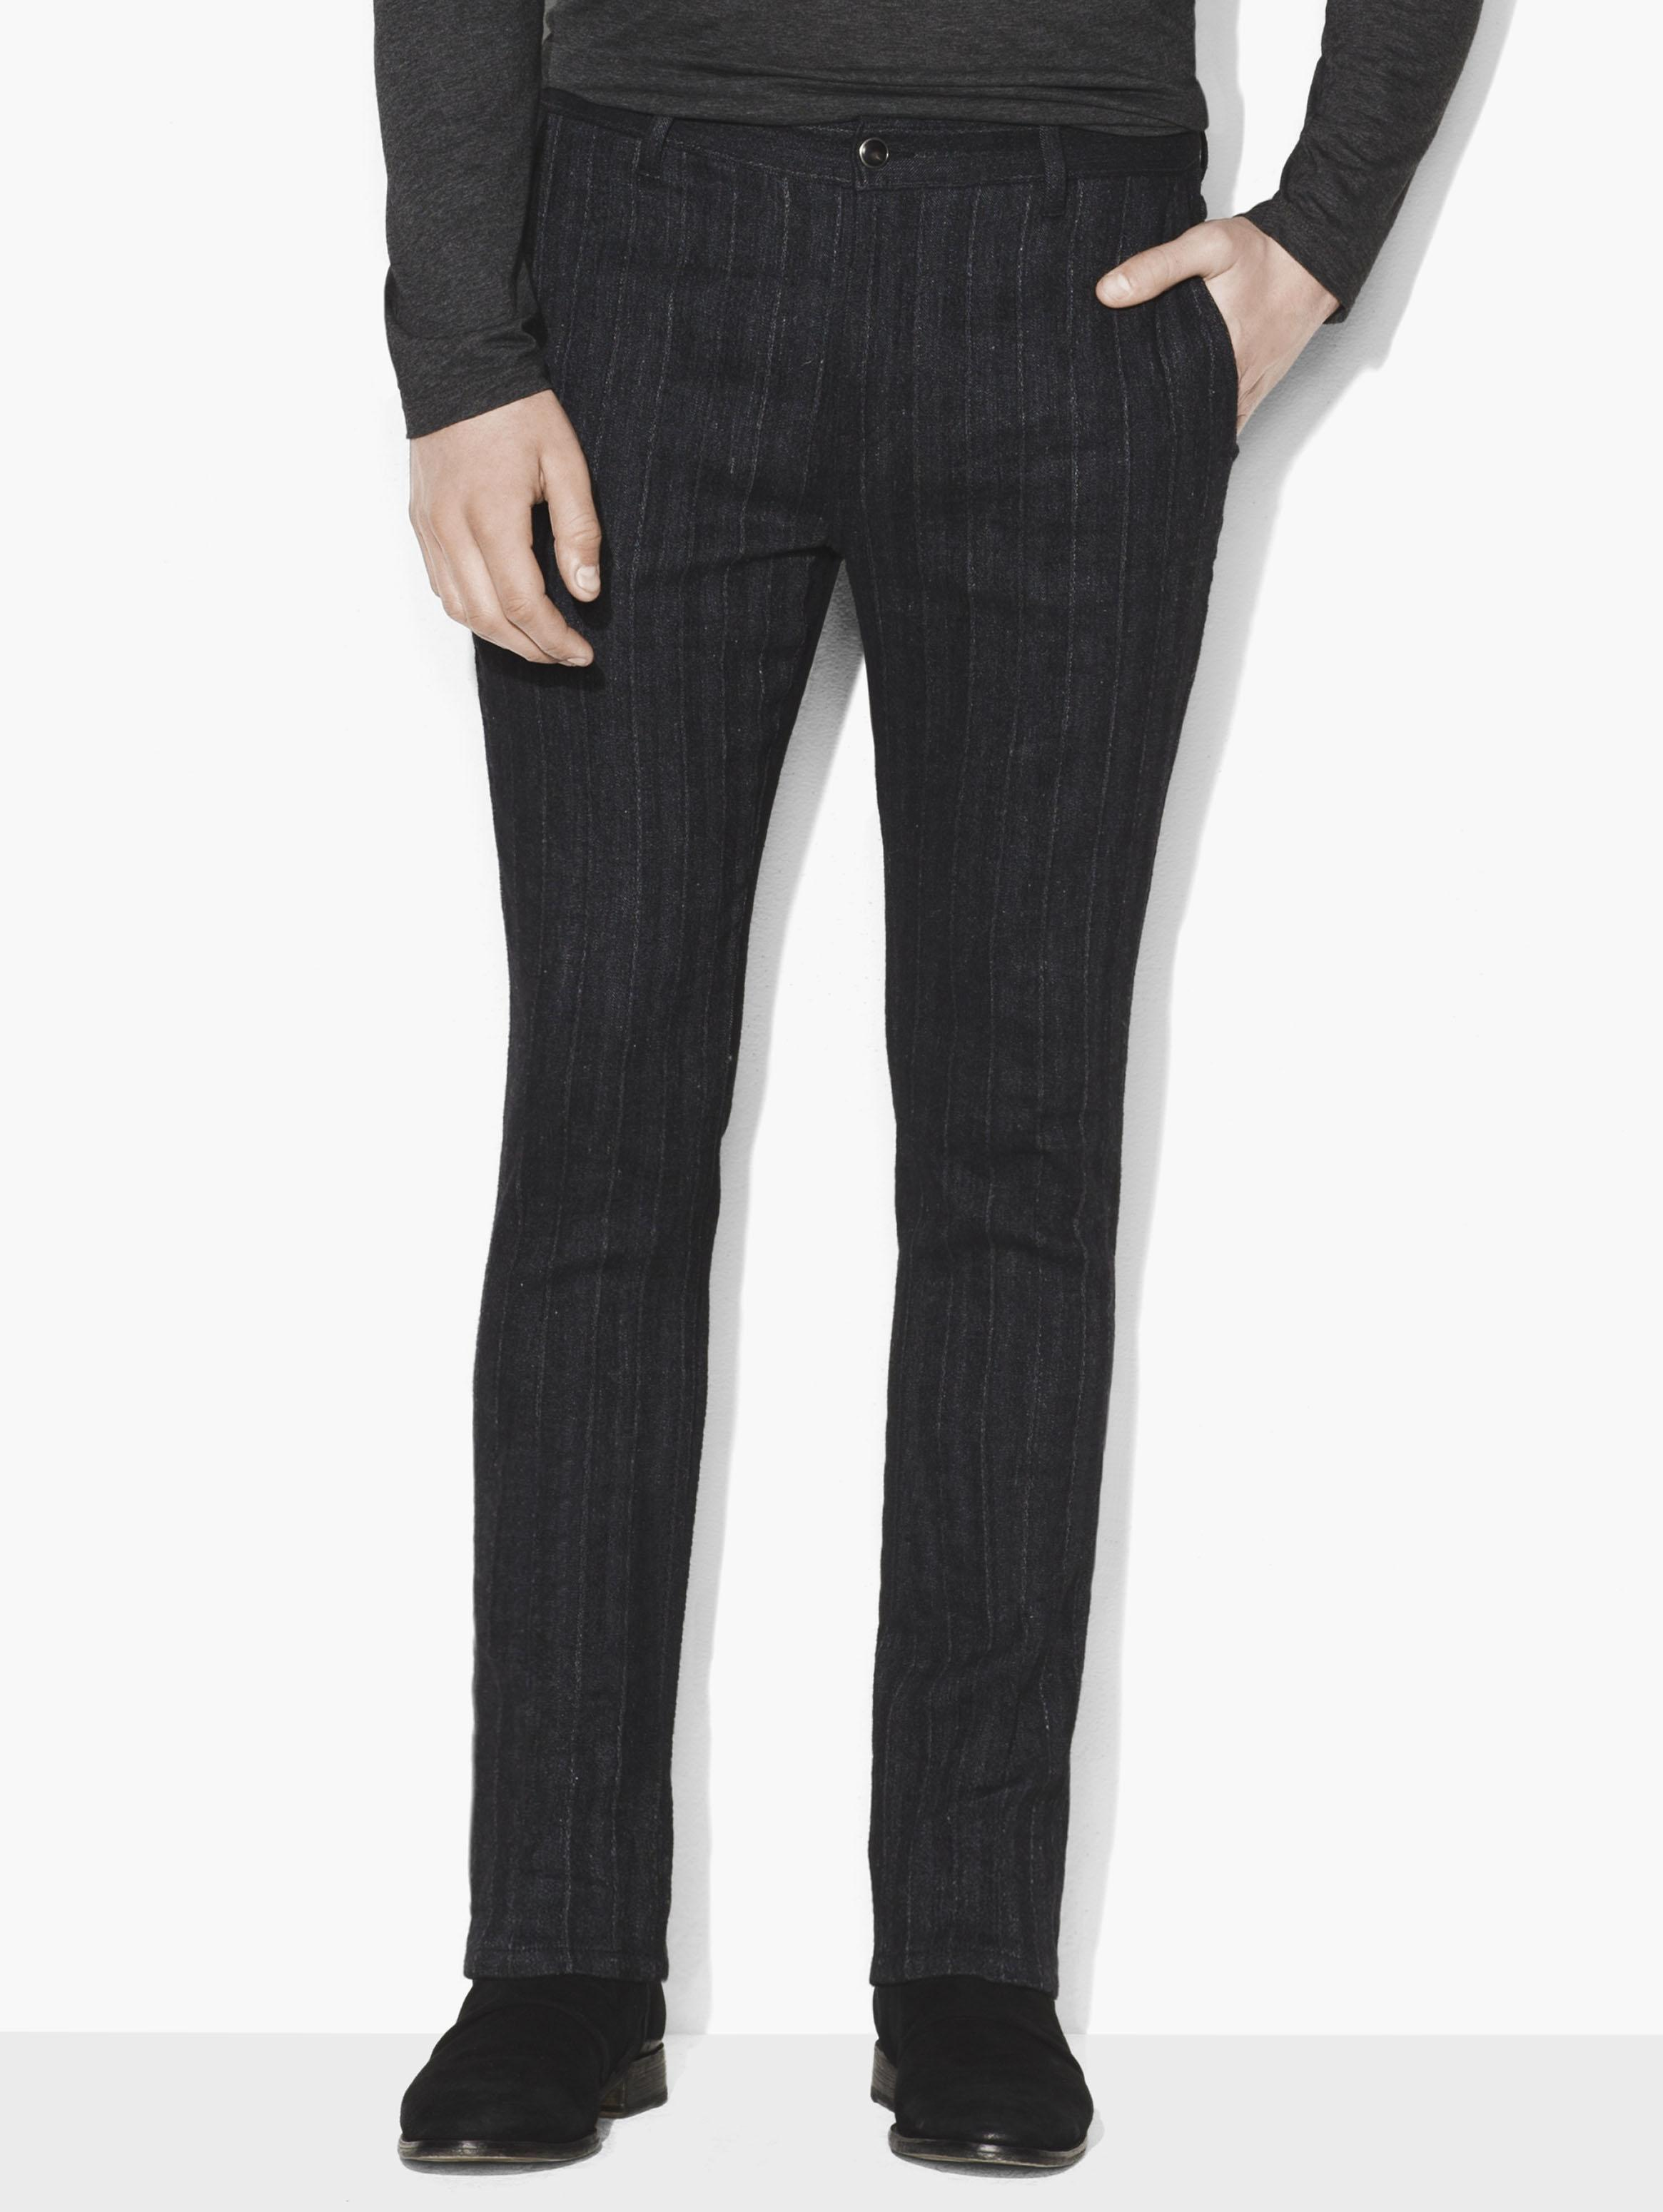 Striped Motor City Pant